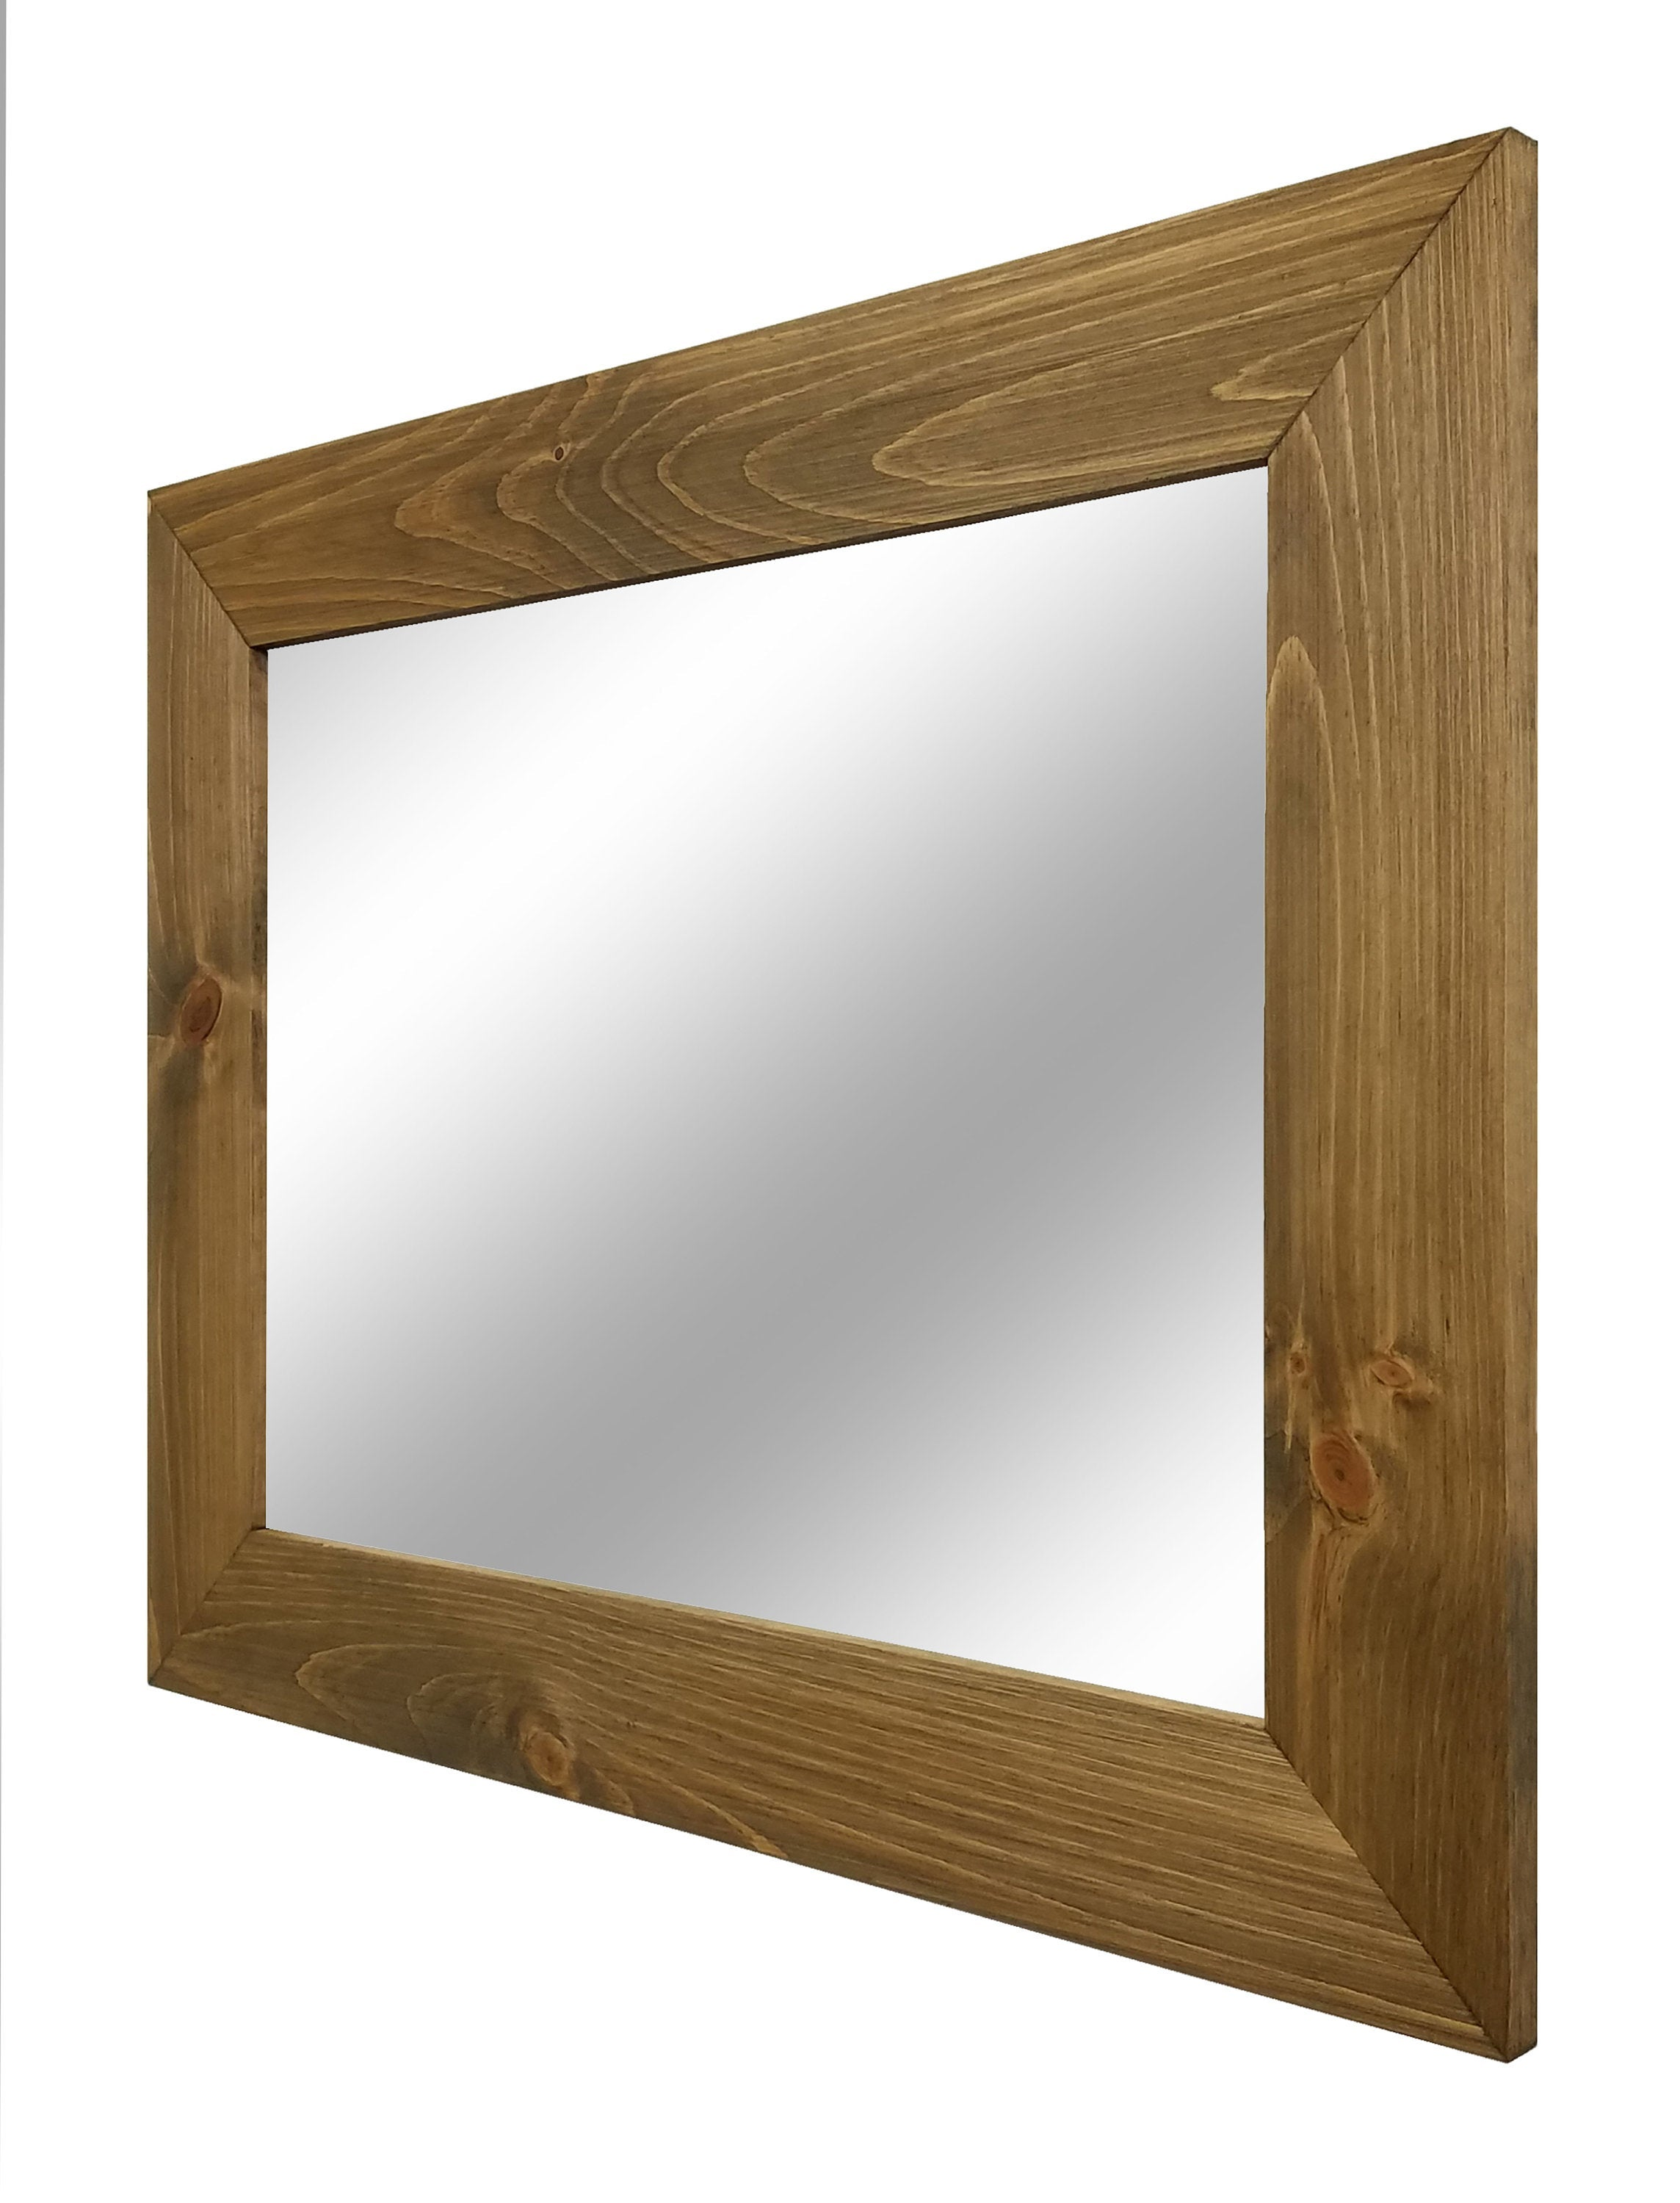 Shiplap Reclaimed Wood Mirror Shown in Driftwood, 4 Sizes & 20 Stains - Renewed Decor & Storage